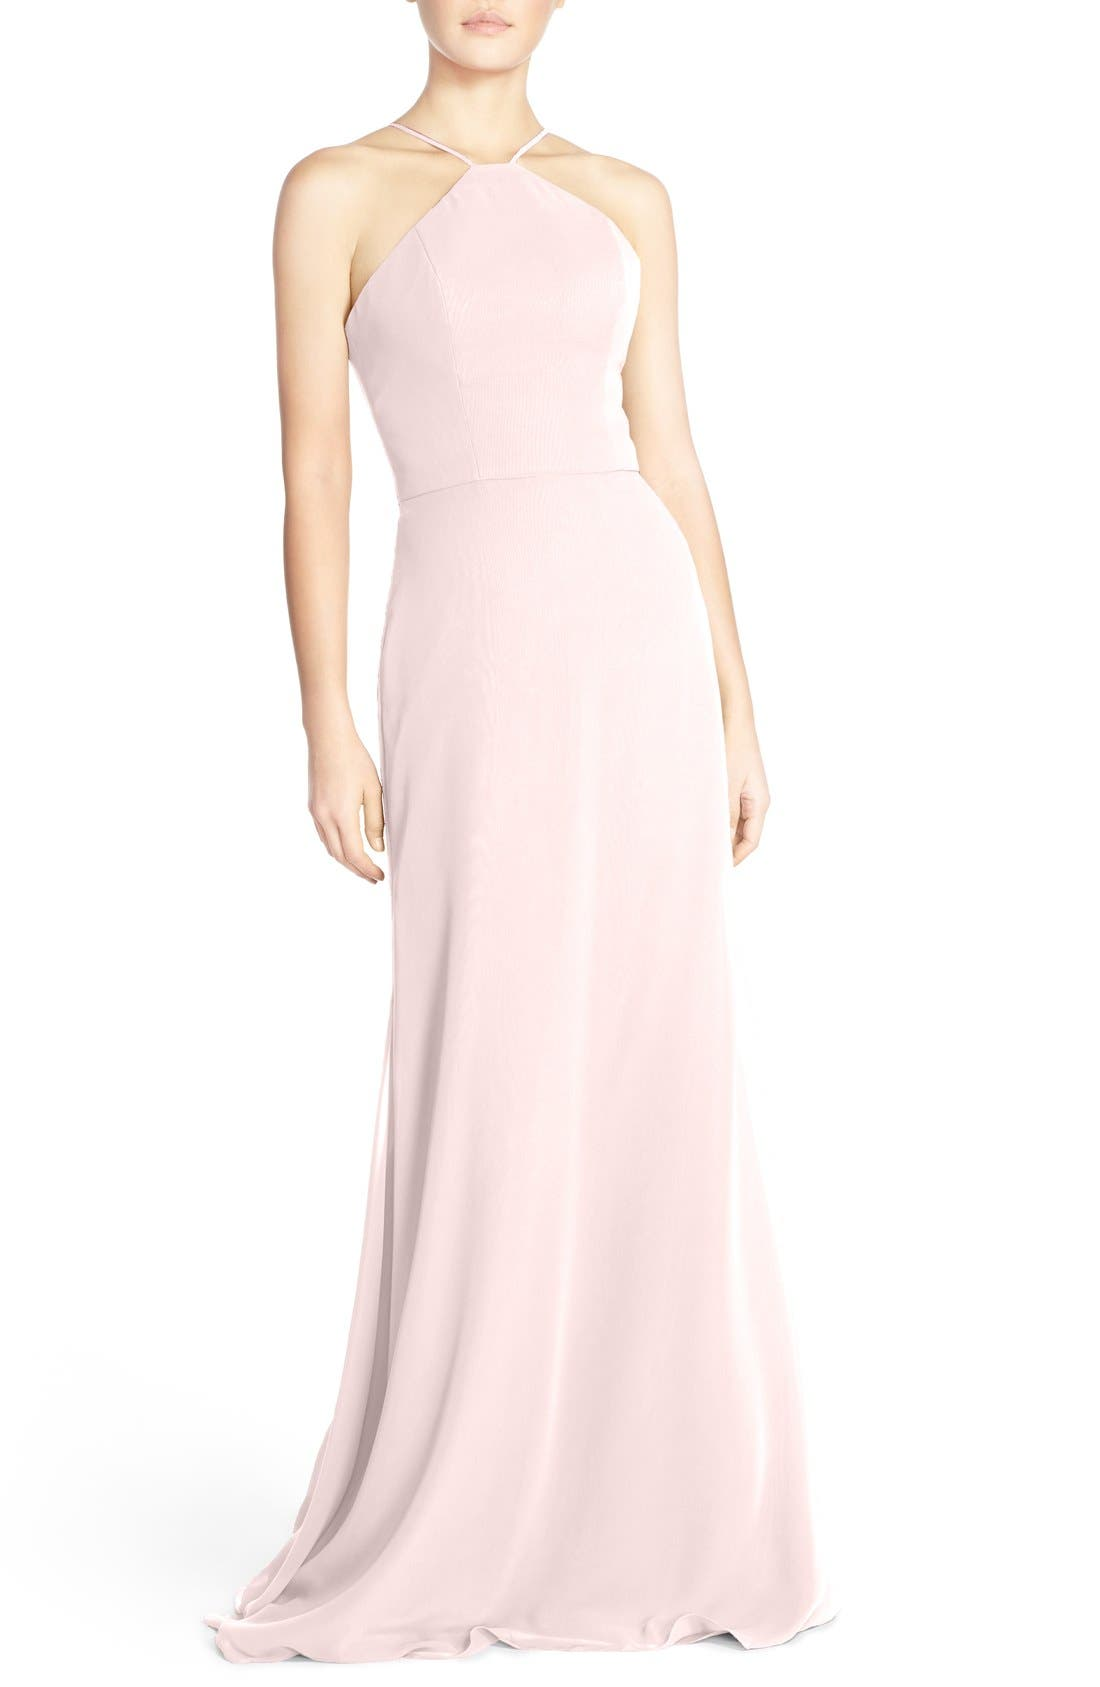 HAYLEY PAIGE OCCASIONS Strappy V-Back Chiffon Halter Gown, Main, color, BLUSH/ CASHMERE